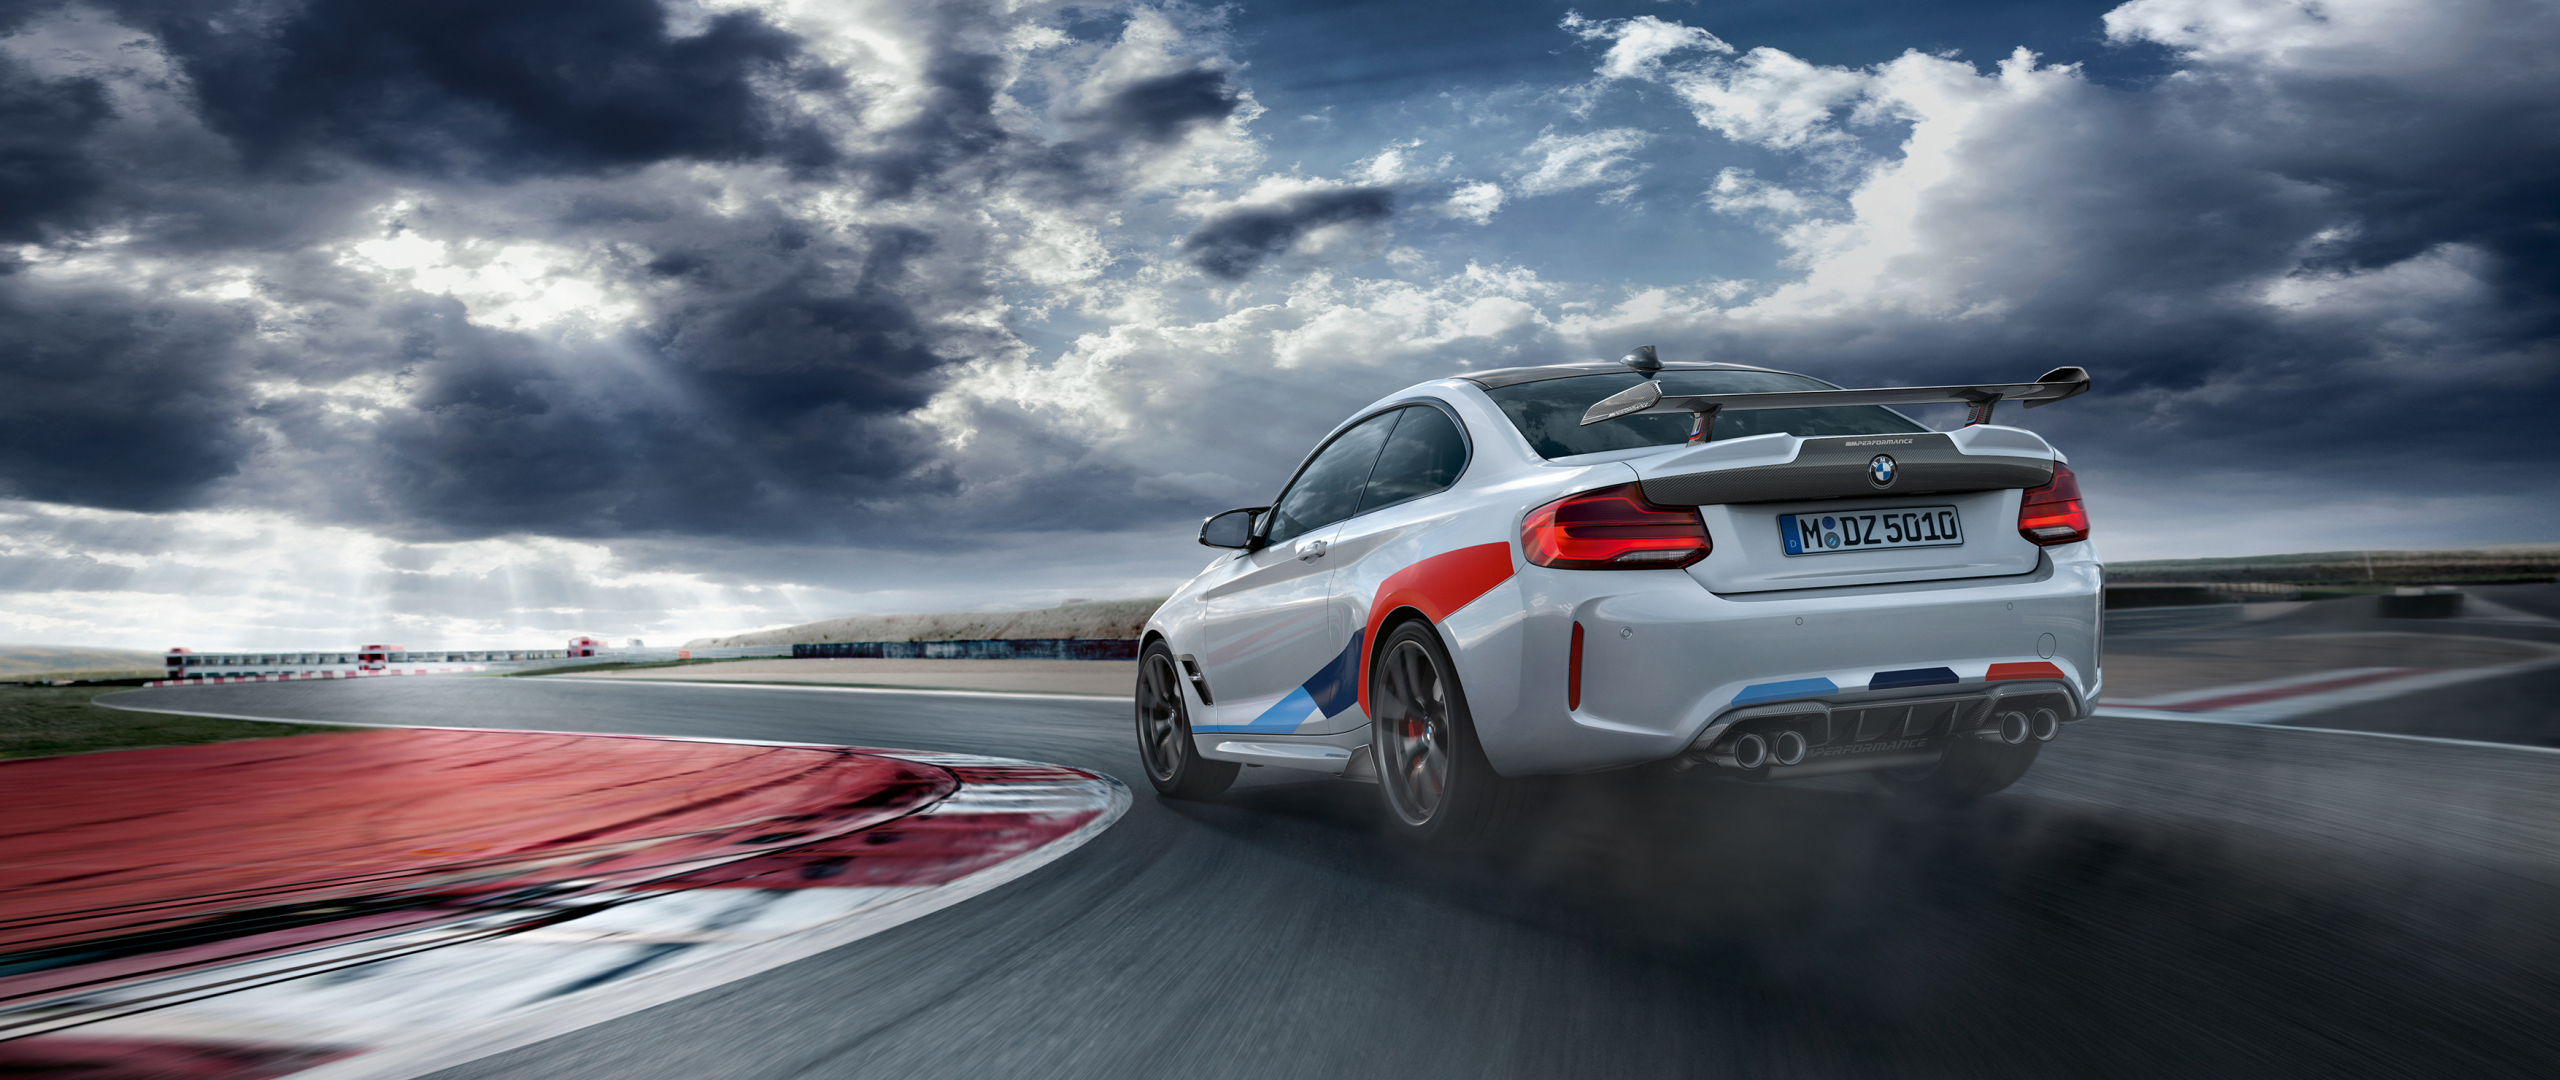 Download 2560x1080 Wallpaper Bmw M2 Competition M Performance 2018 Drift Race Track Dual Wide Widescreen 2560x1080 Hd Image Background 7286